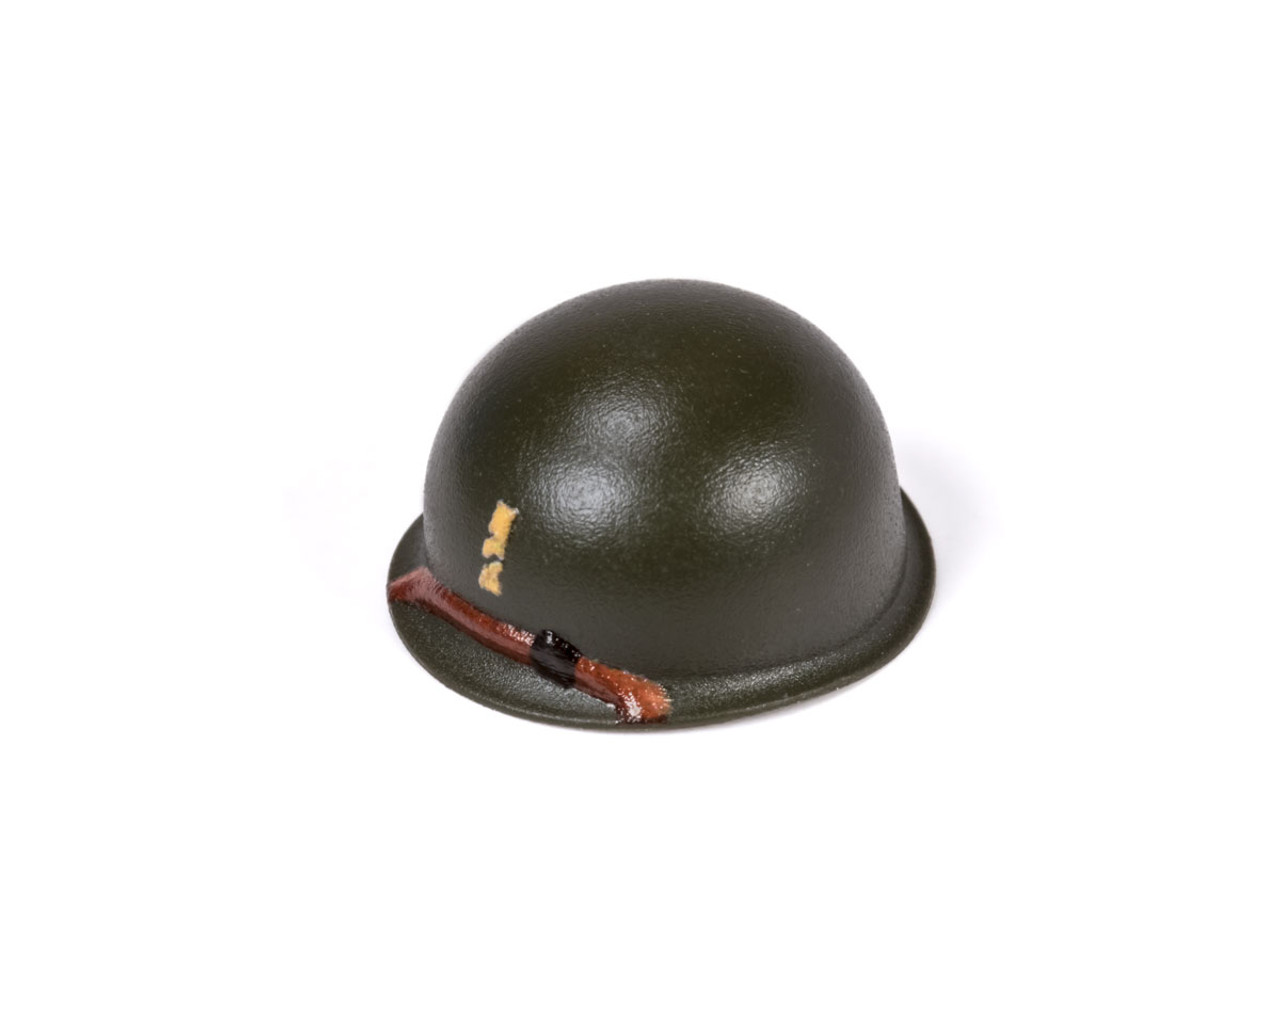 M1 Steel Pot Helmet - 2nd Lieutenant Rank